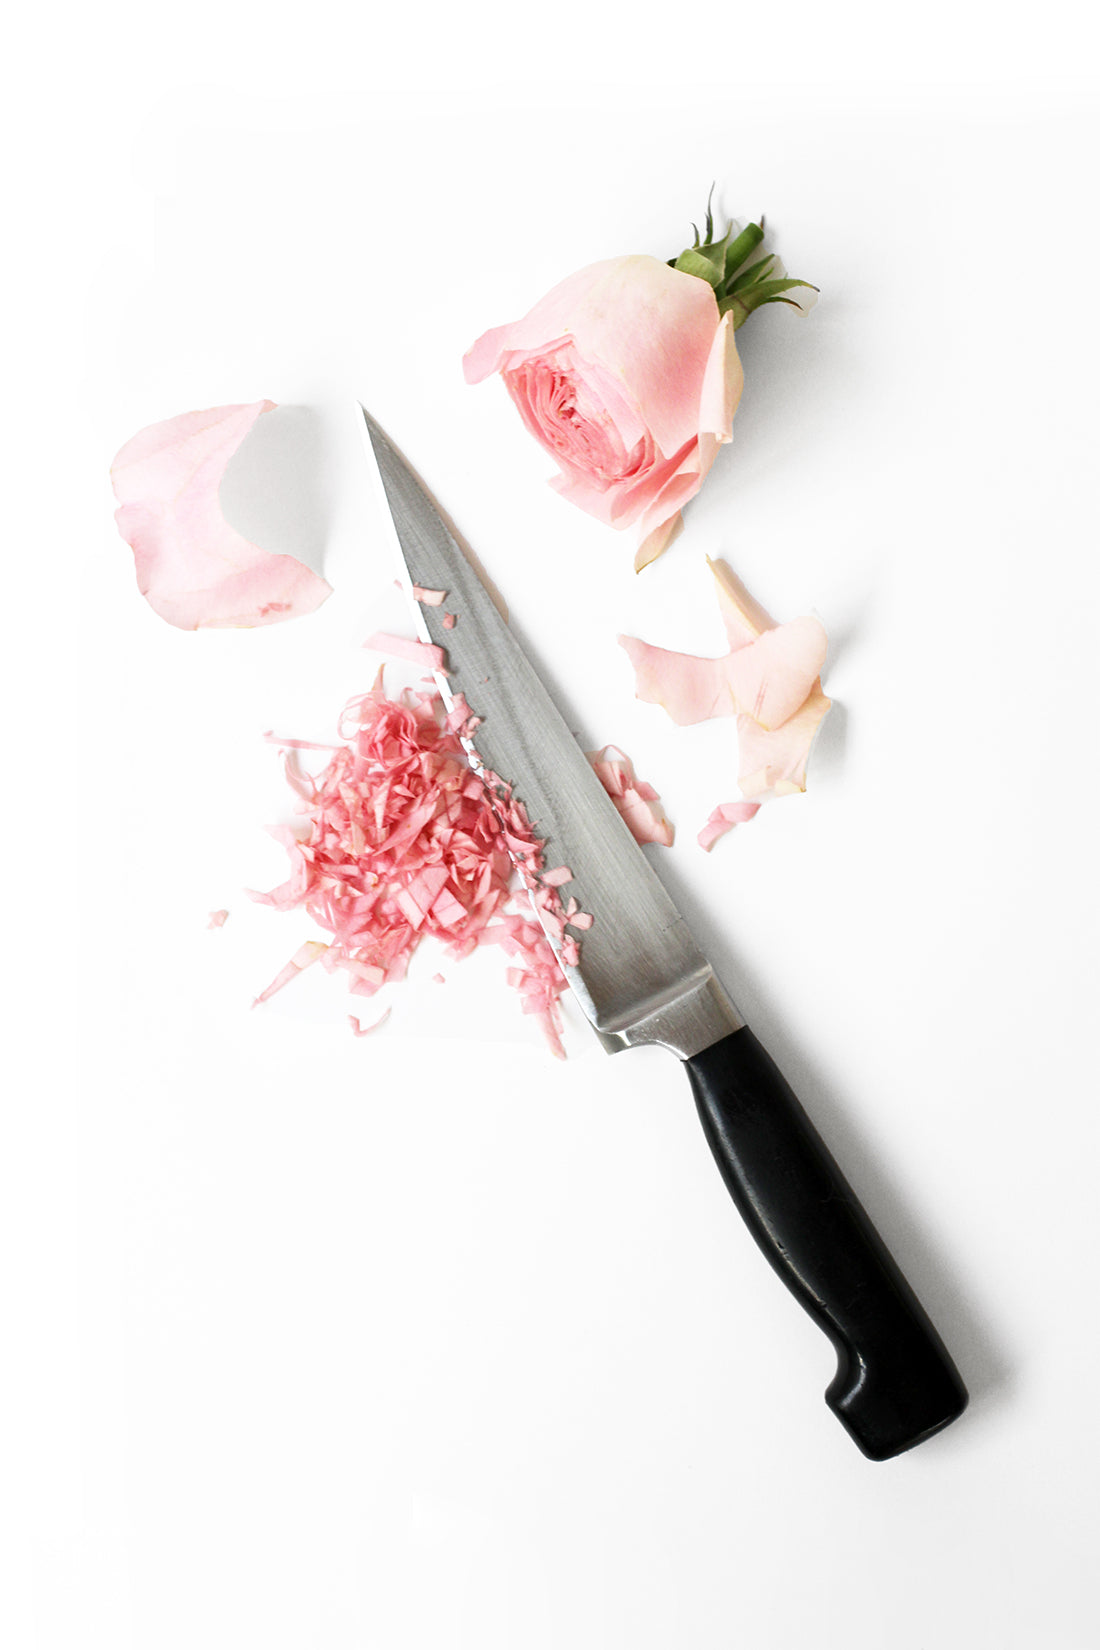 Image from above of a rose being cut into smaller pieces next to a knife for Miss Jones Baking Co Rosé All Day Rose Cake